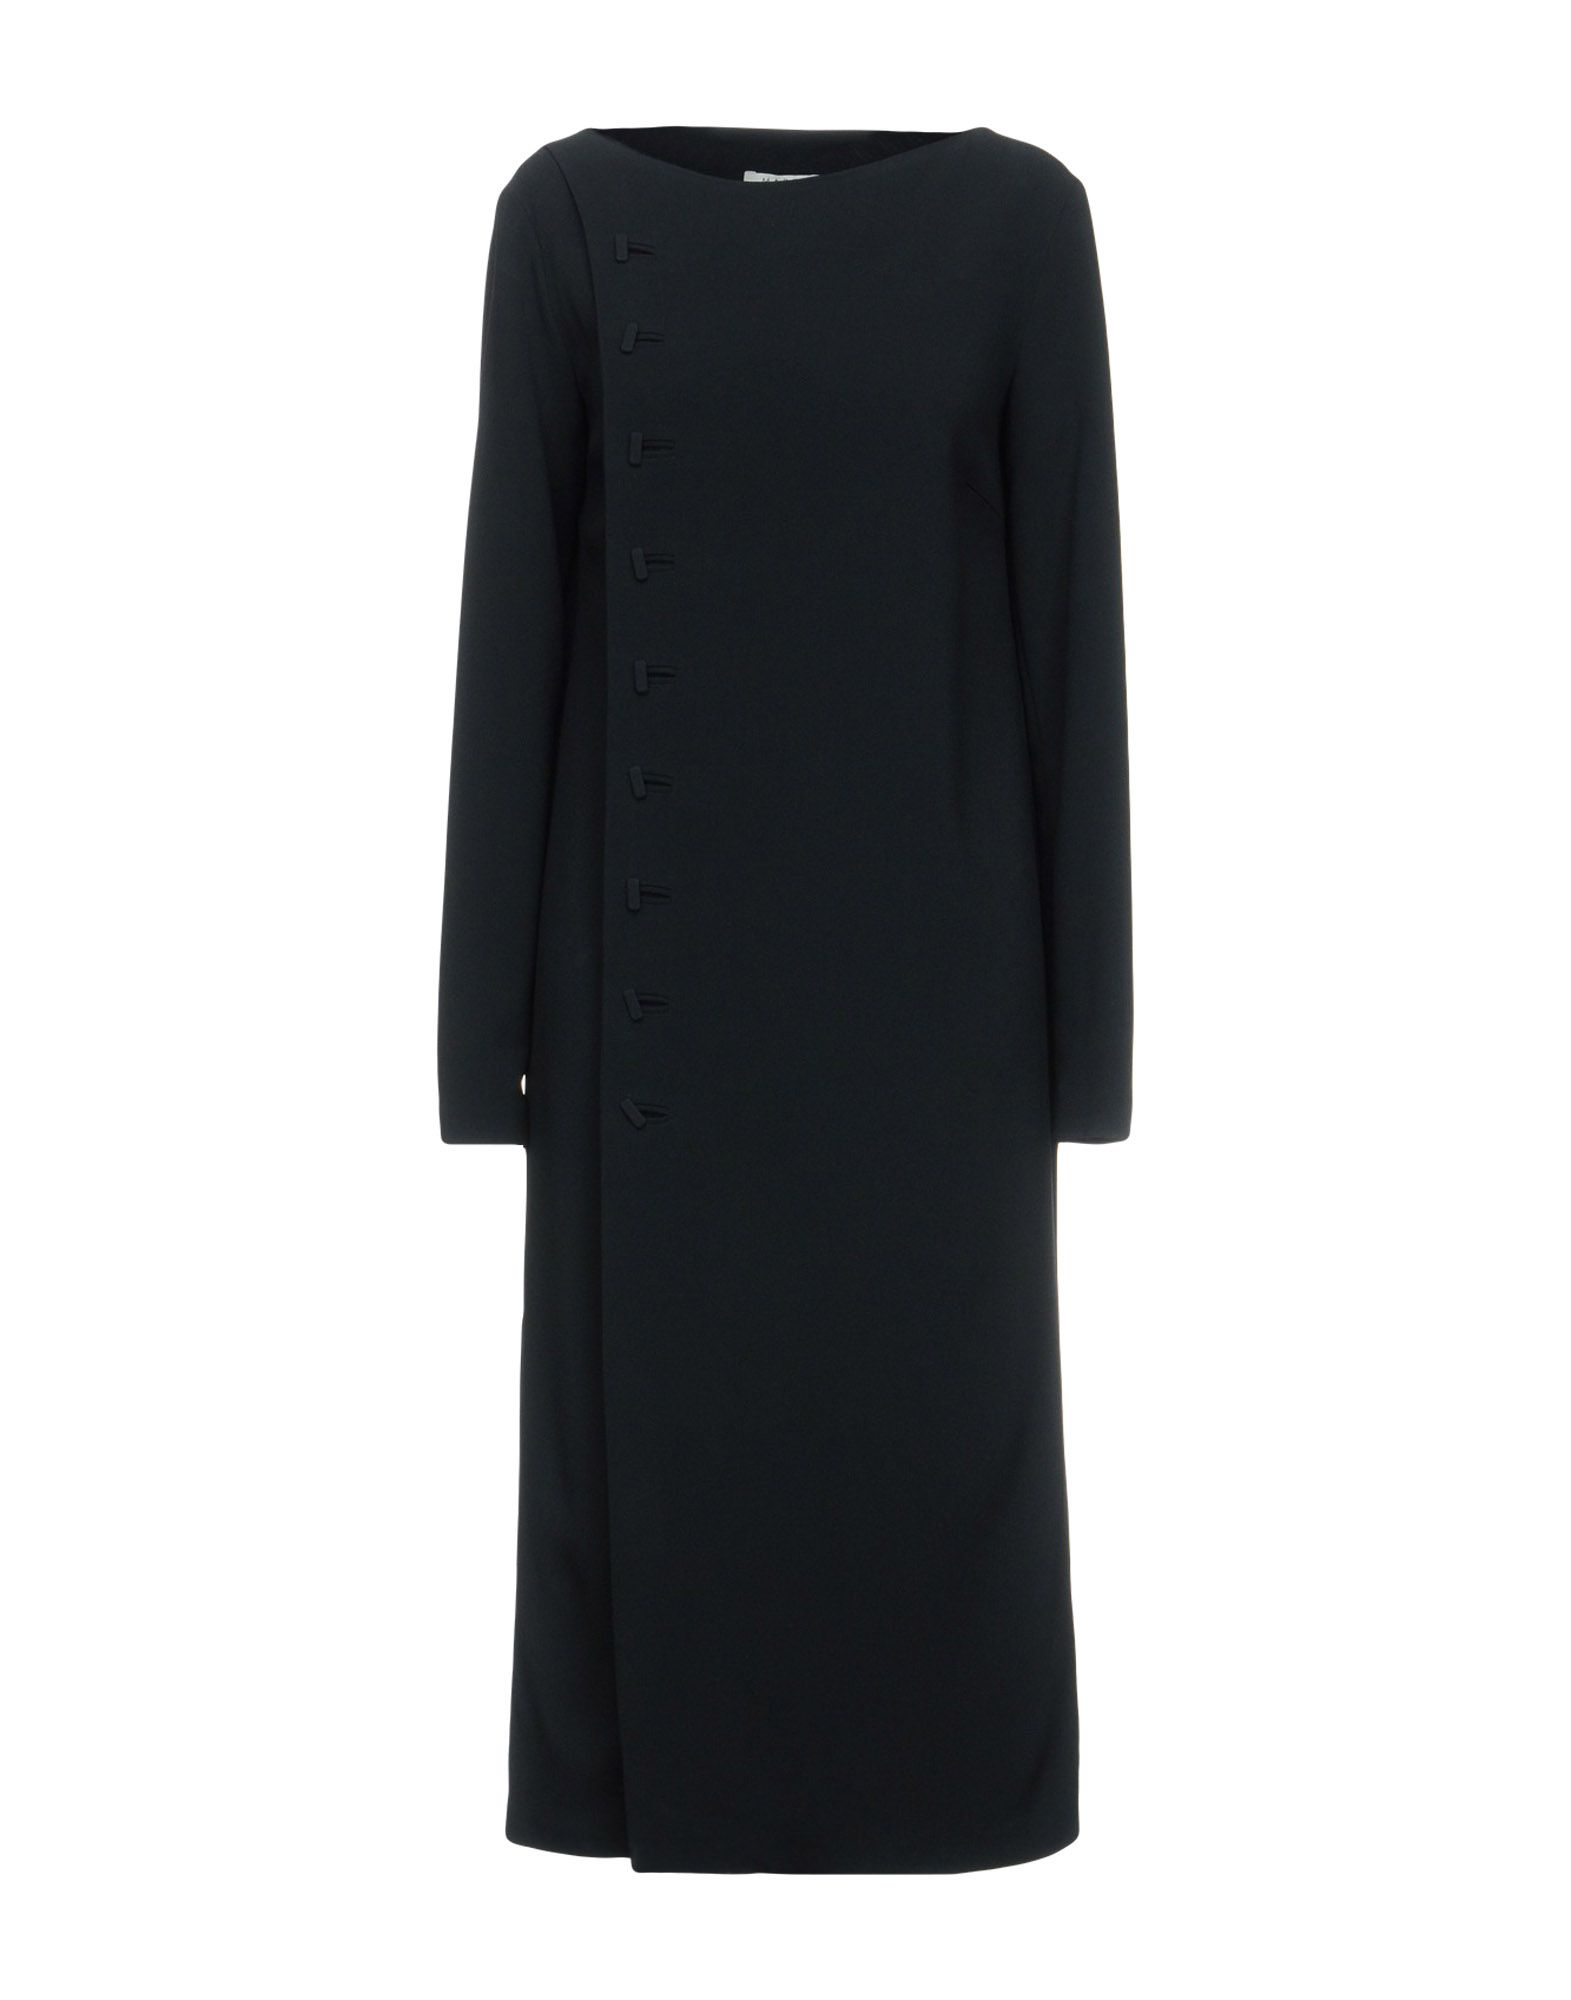 MAREI Midi Dress in Black